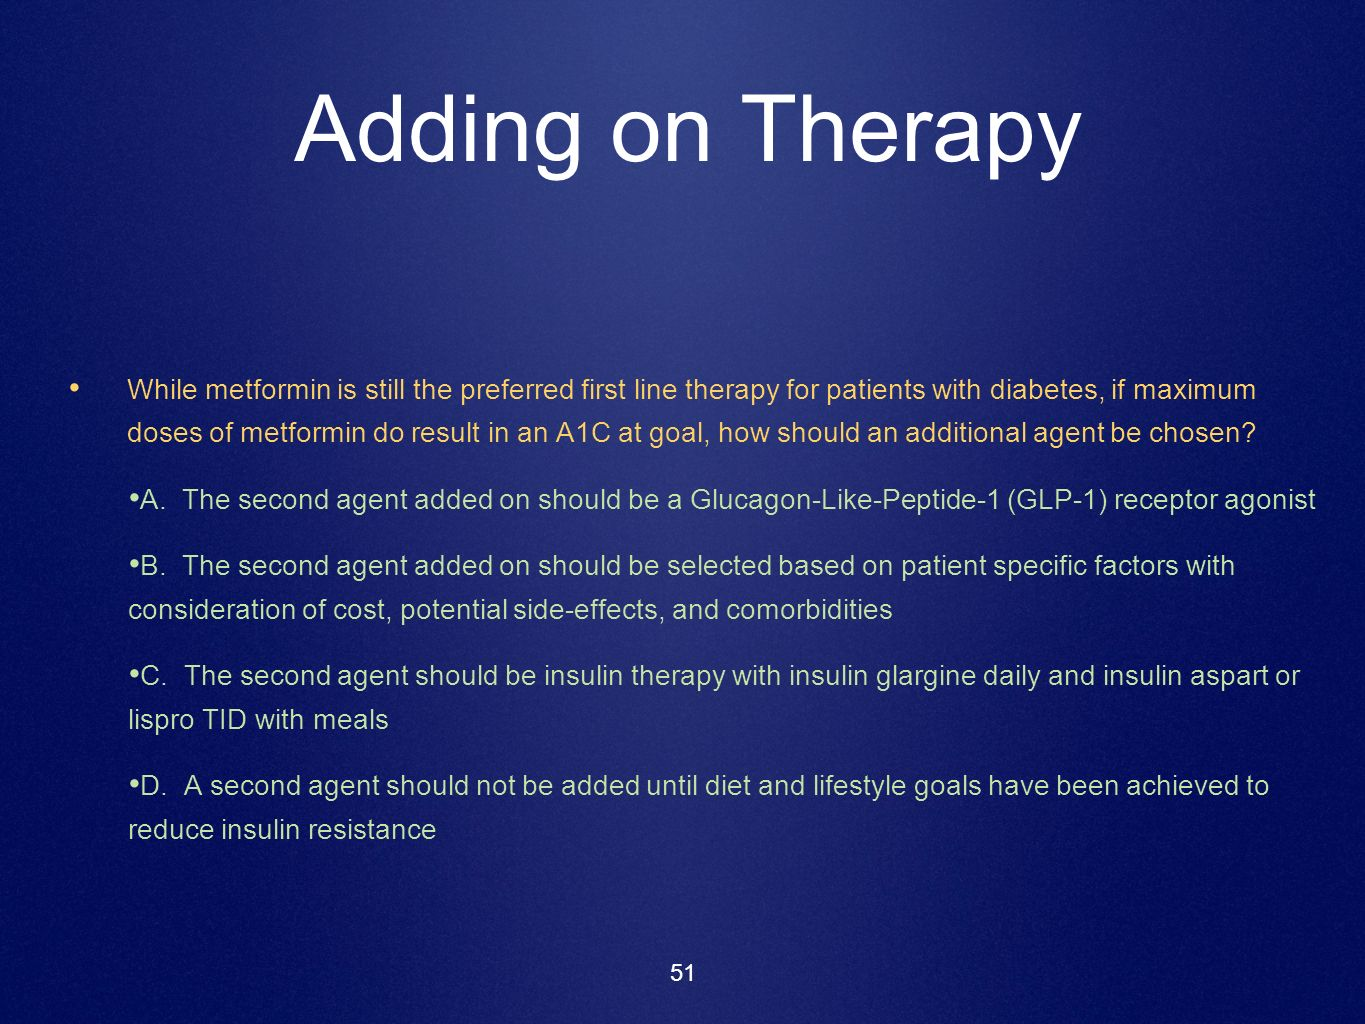 51 Adding on Therapy While metformin is still the preferred first line therapy for patients with diabetes, if maximum doses of metformin do result in